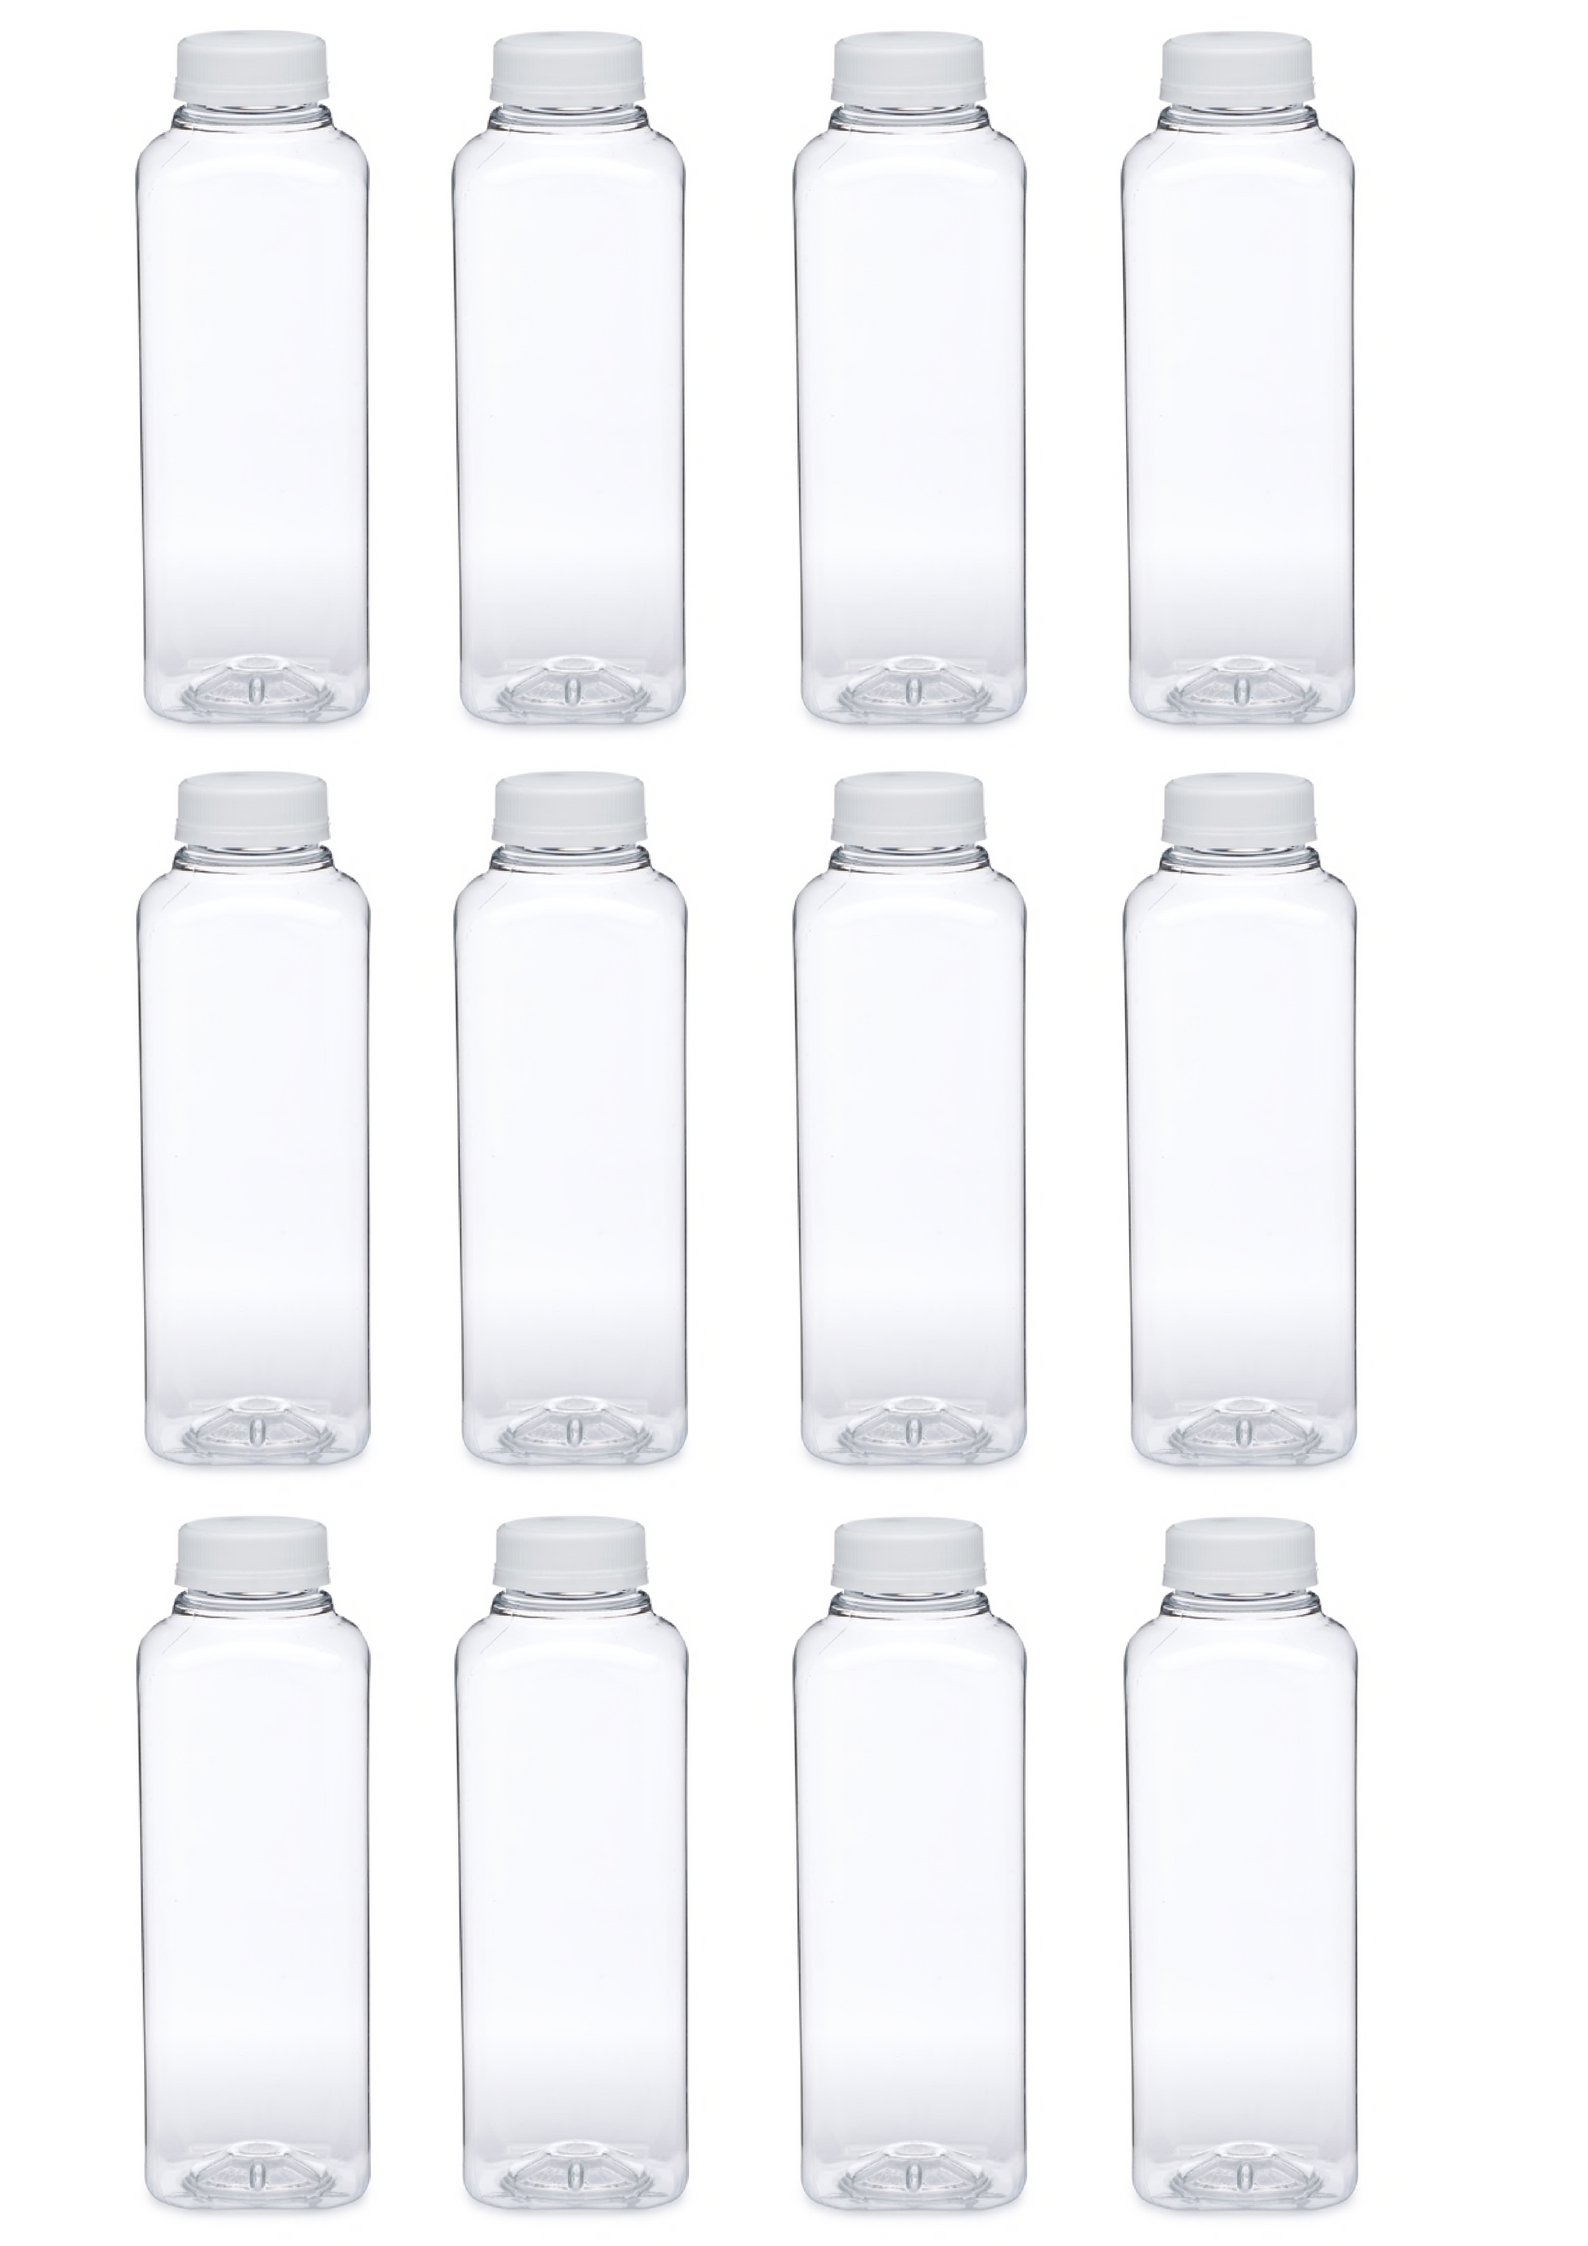 16oz Clear Square PET Plastic Bottles with Tamper Evident Caps, Set of 12 Bottles and 12 caps (white)